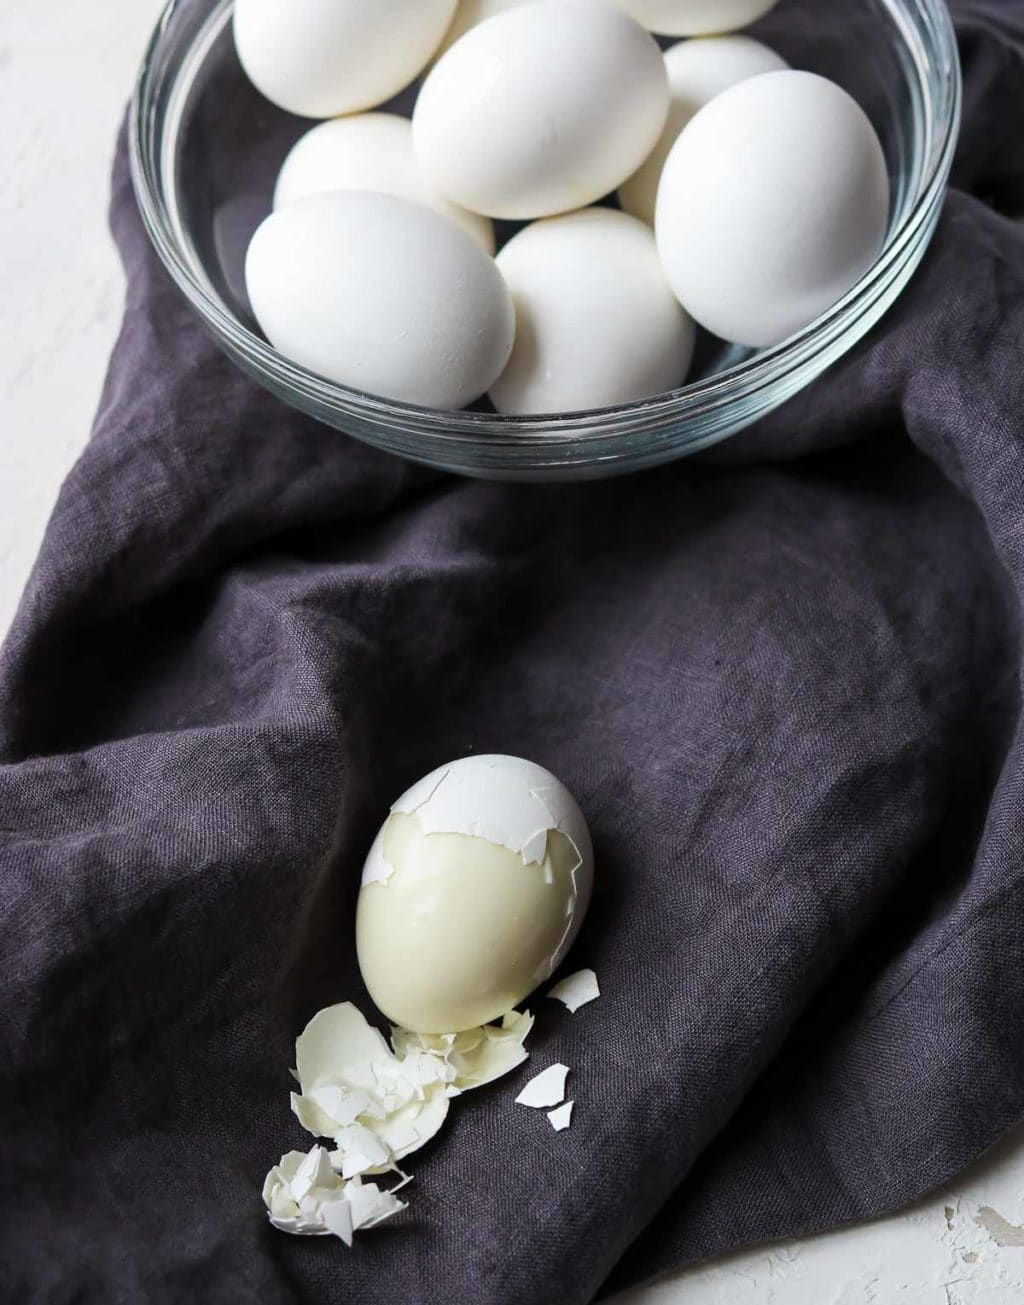 A bowl of hard boiled eggs cooked in the instant pot and one egg half peeled